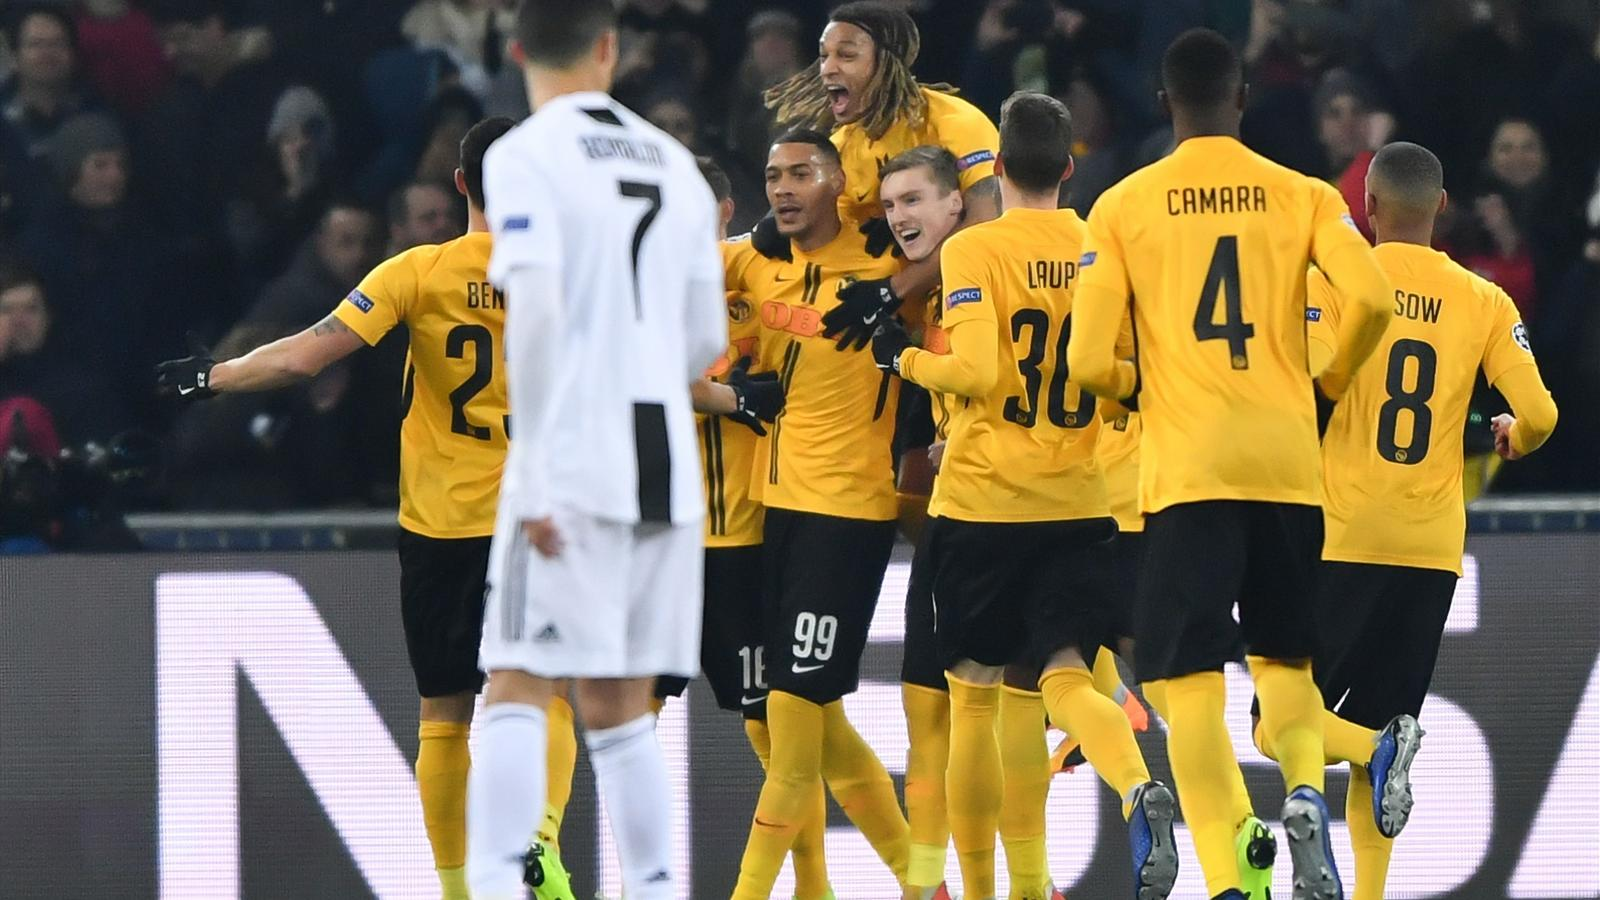 huge selection of 37f77 01457 Juventus finish top despite surprise defeat to Young Boys ...